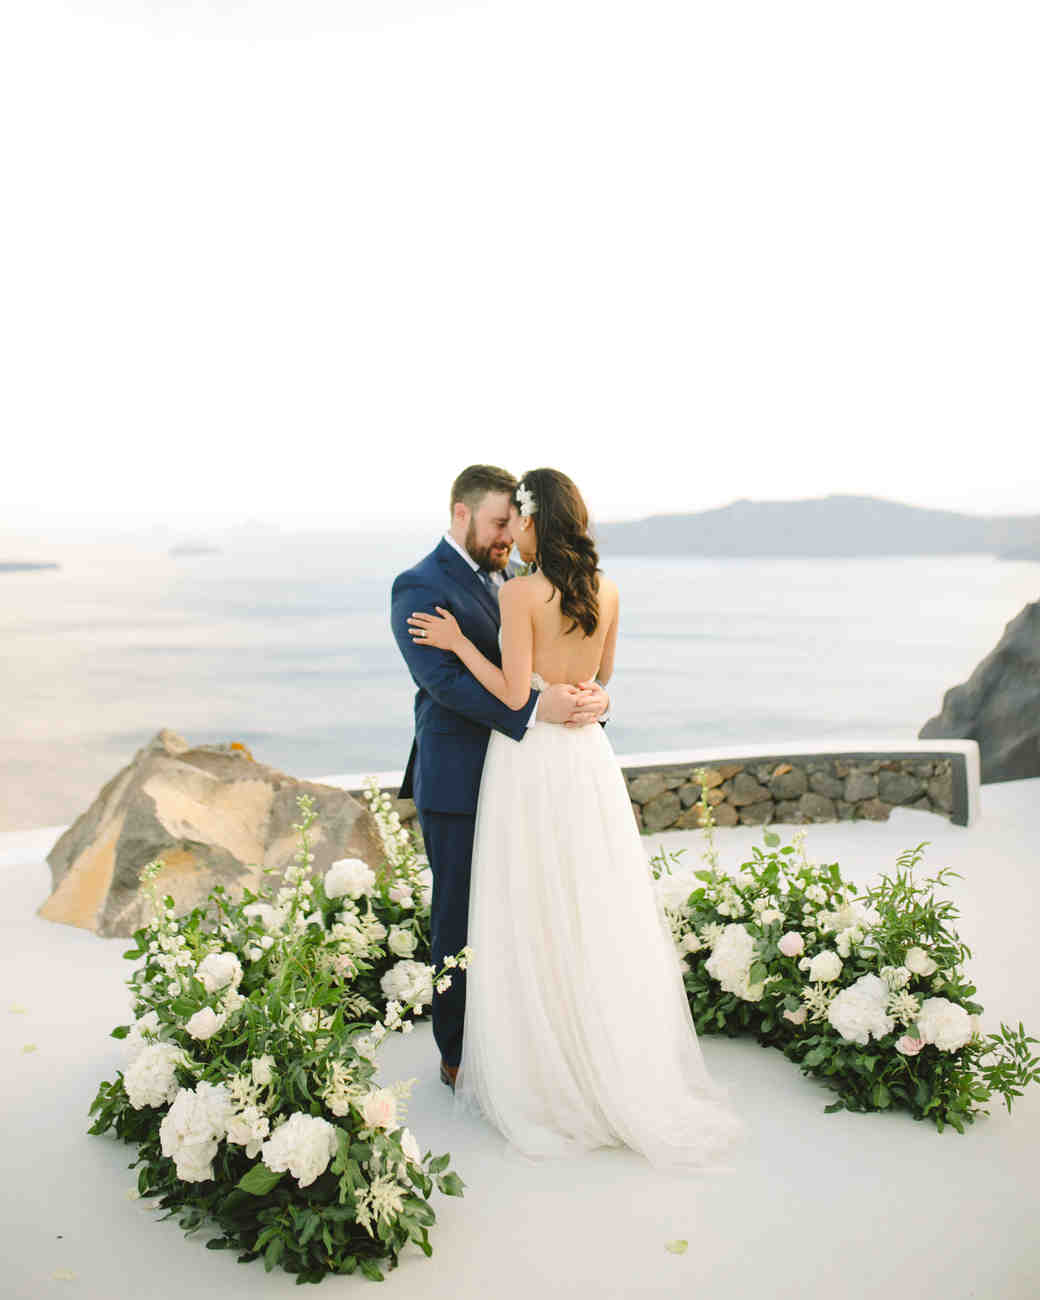 wedding ground floral arch greenery and white florals white flooring